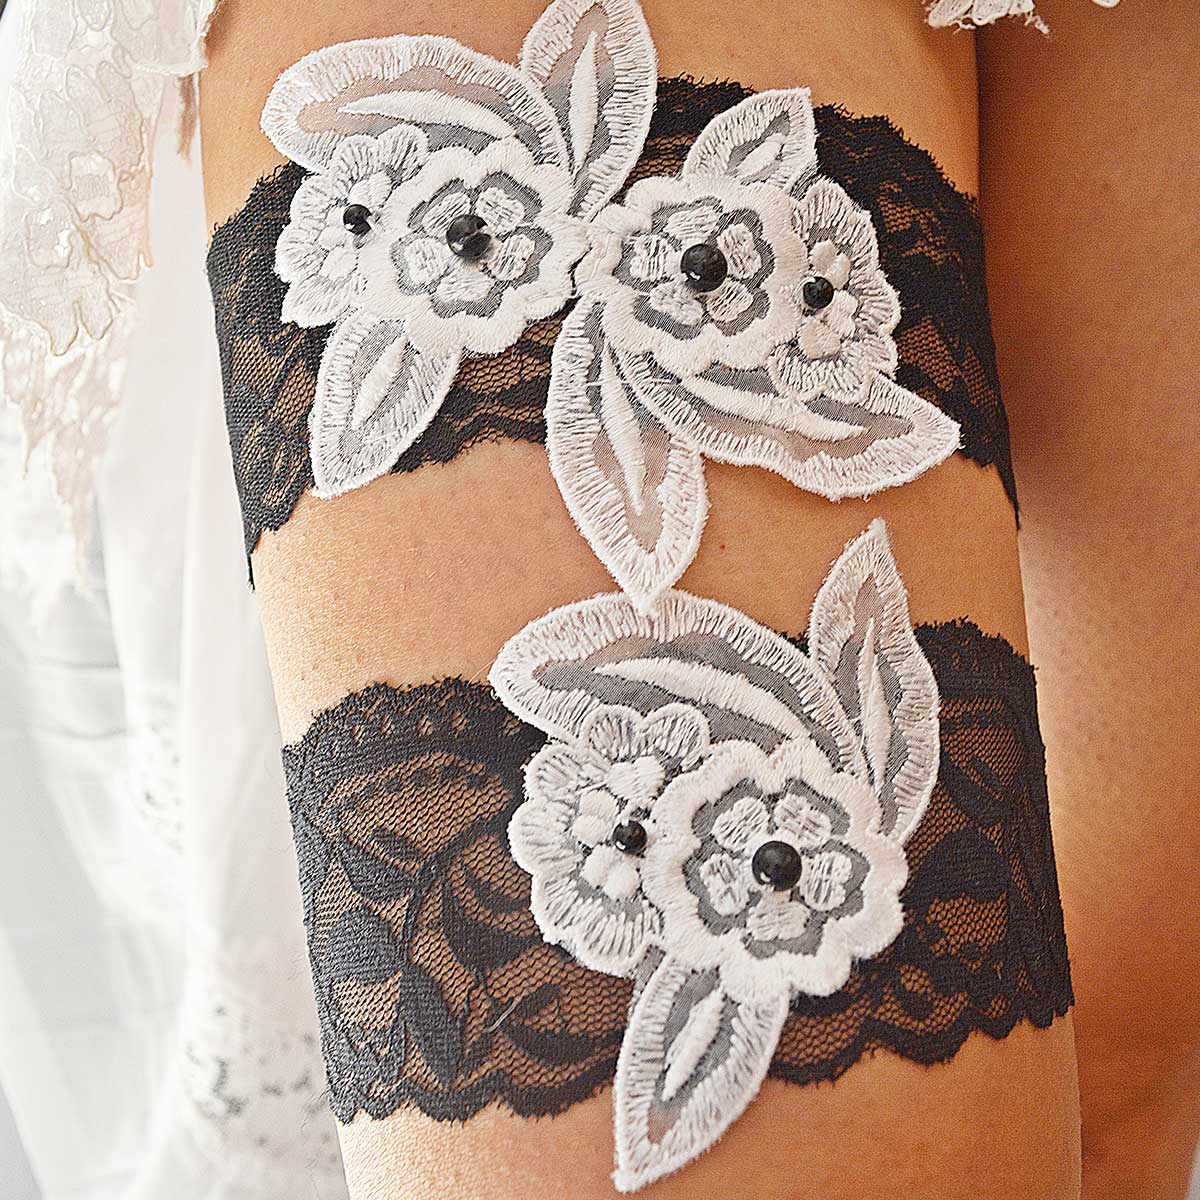 Total Black Bridal Garter With Flower Lace Applique & Pearls